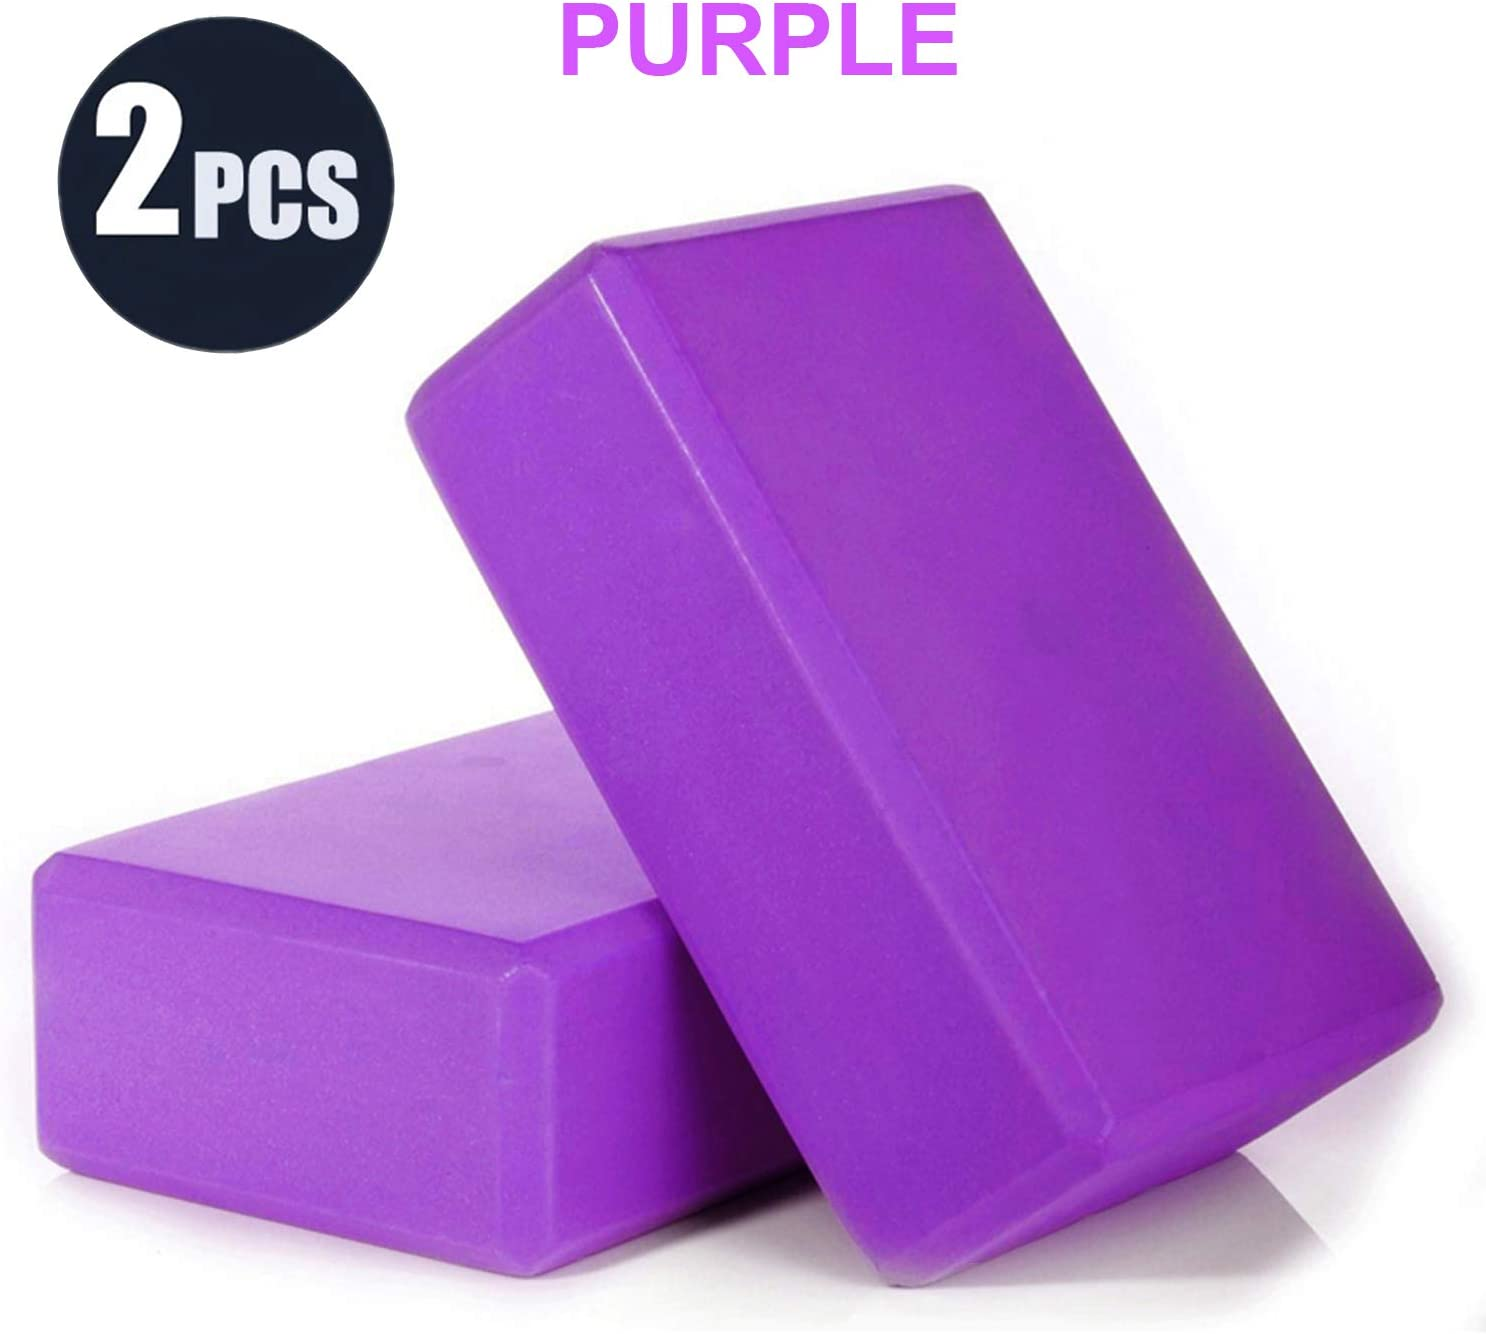 Pilates Meditation Supportive High Density EVA Foam Soft Non-Slip Surface for Yoga EUSIN Yoga Block 2pcs